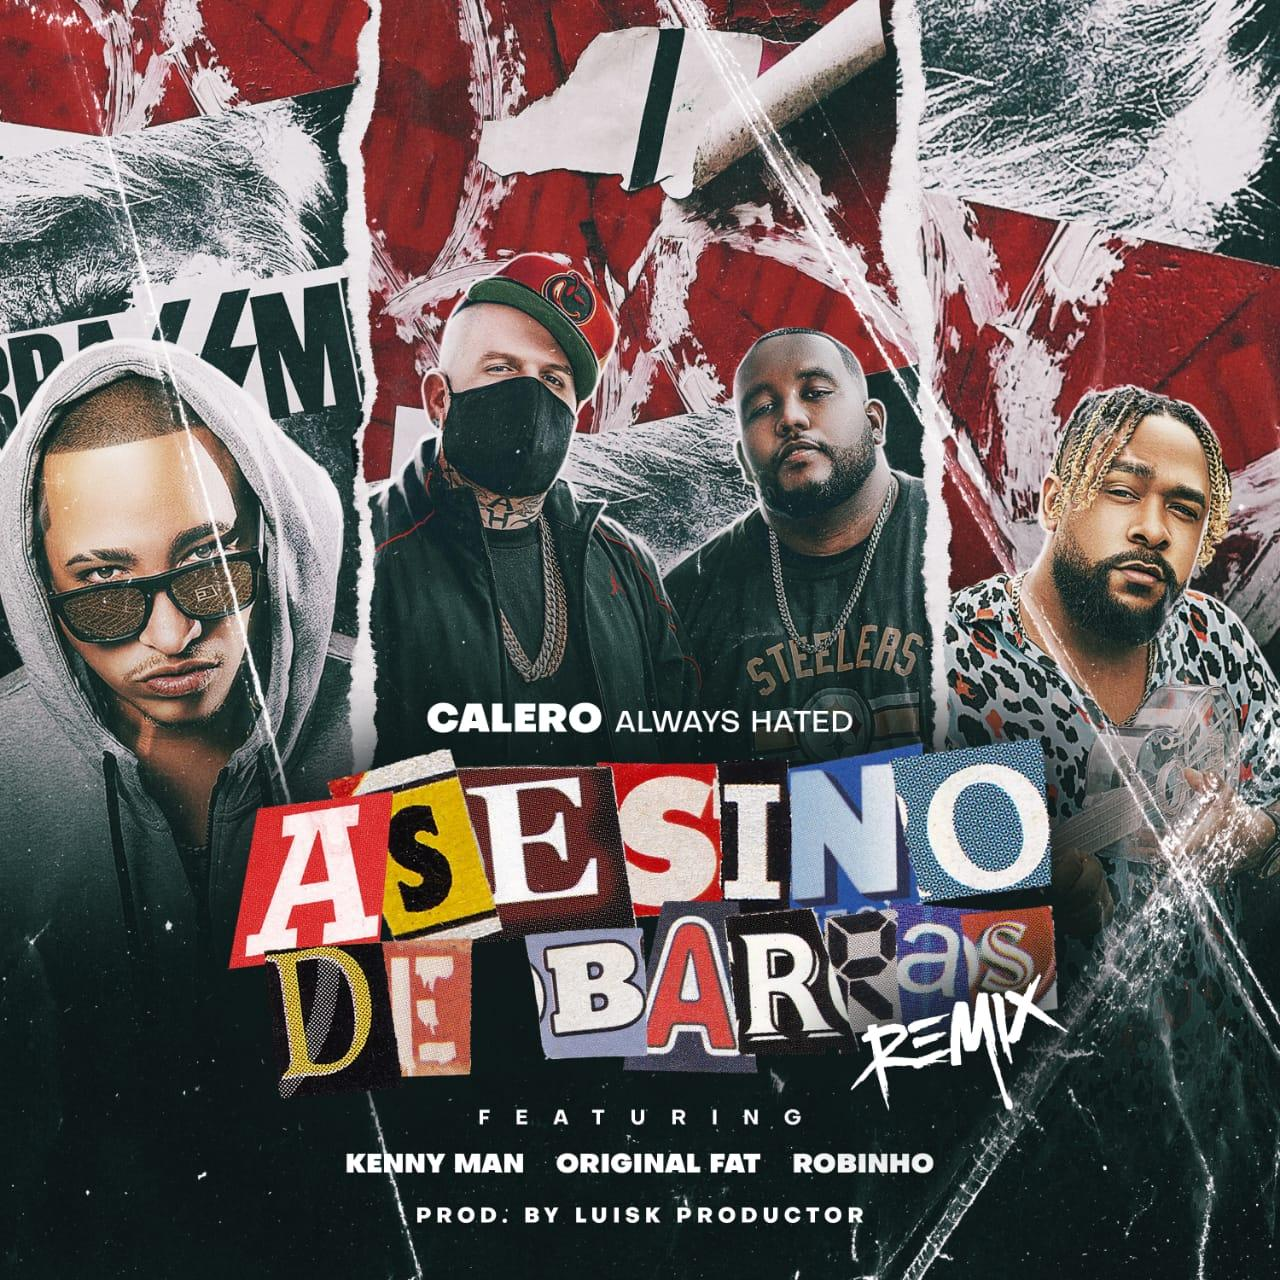 Calero Ft. Kenny Man, Original Fat & Robinho - Asesino De Barras (Remix)